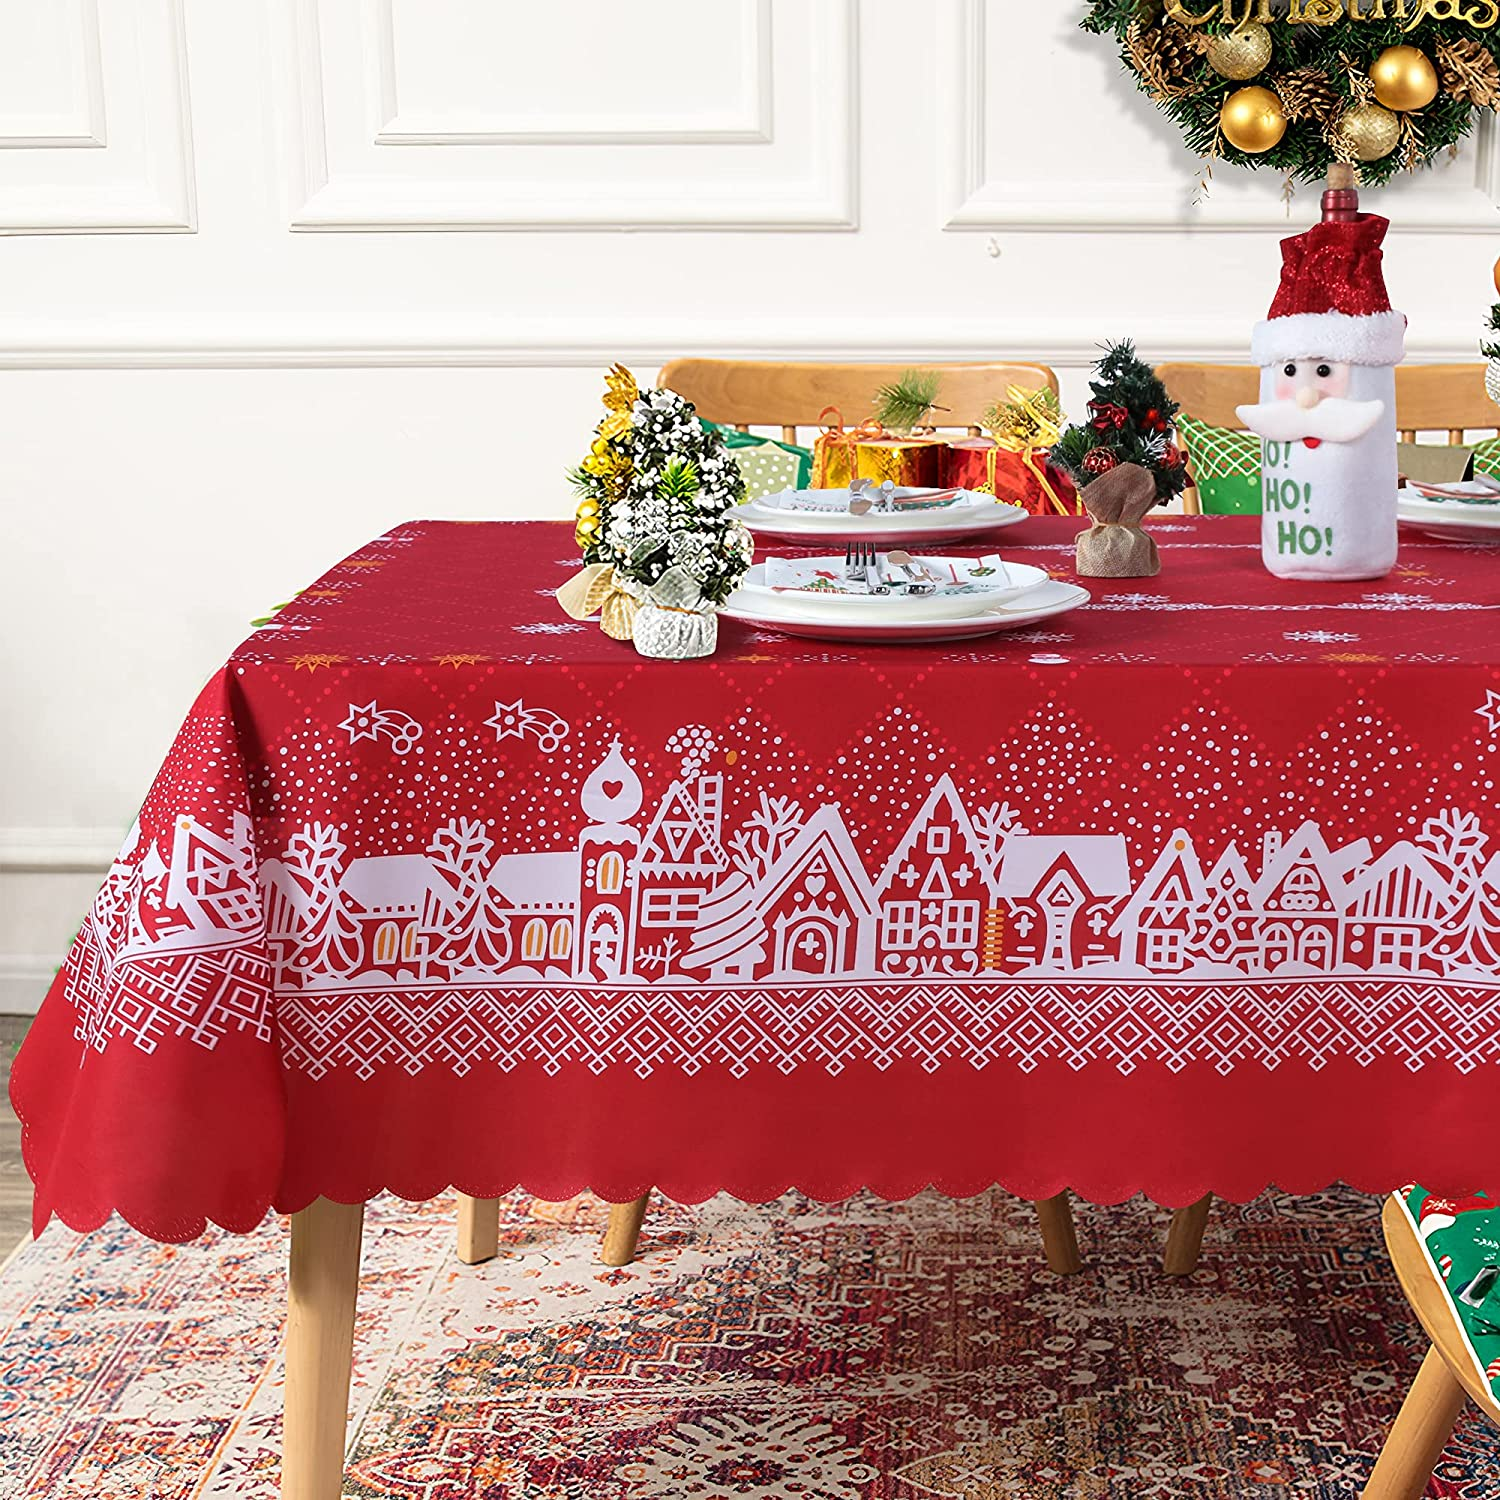 Fitable Christmas Tablecloth New Year's House Deco Many popular brands Eve Louisville-Jefferson County Mall Snowflake